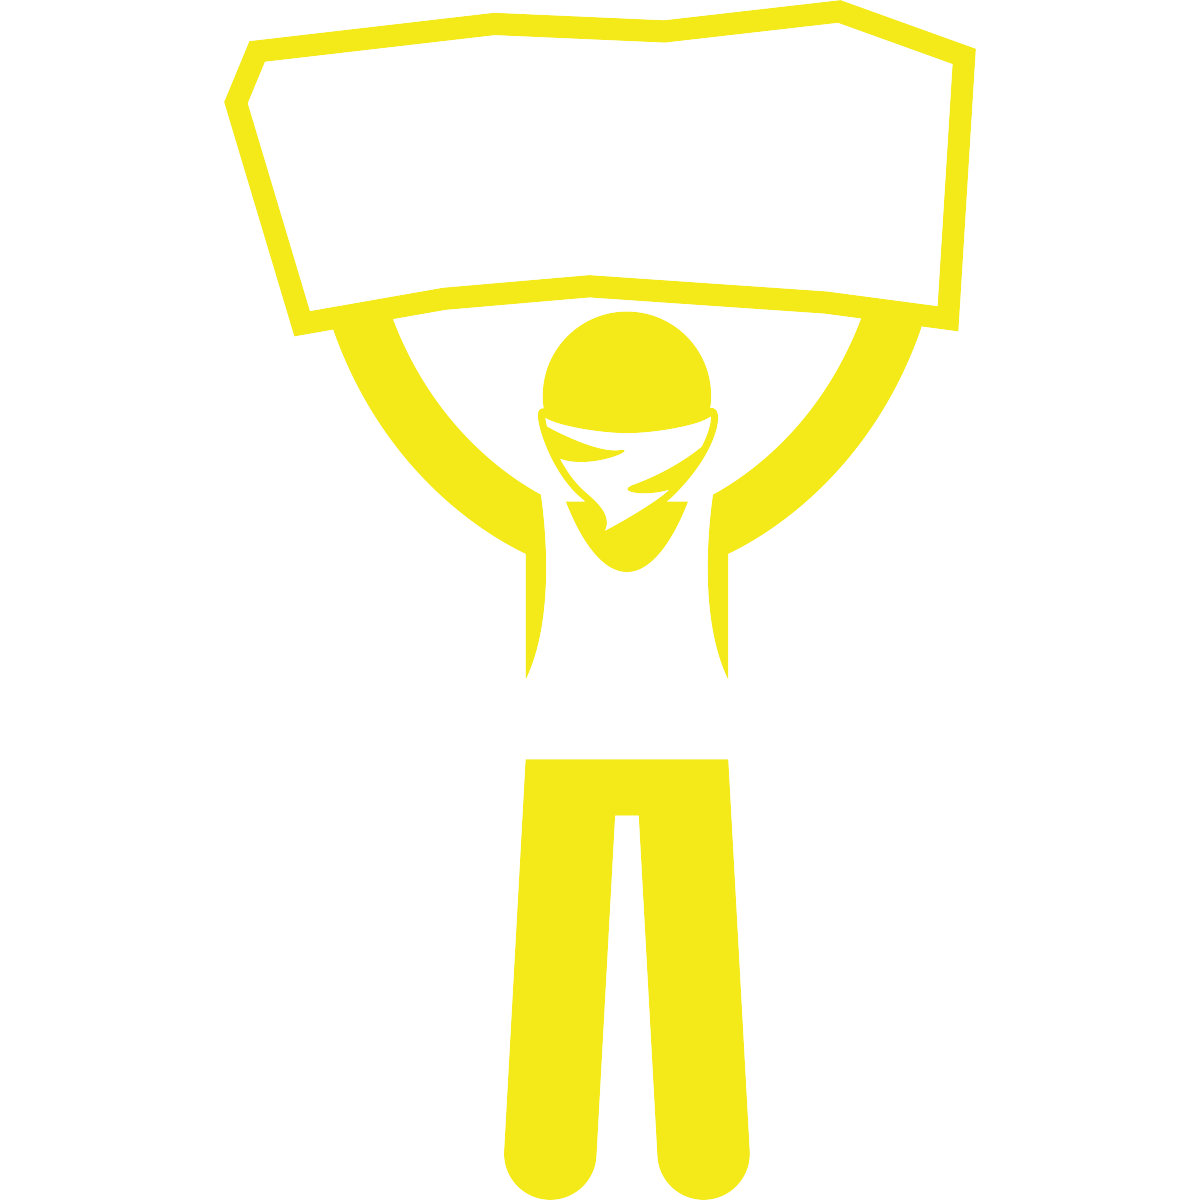 noun_Street Protester Holding Sign_1584249_f4ea1a.png